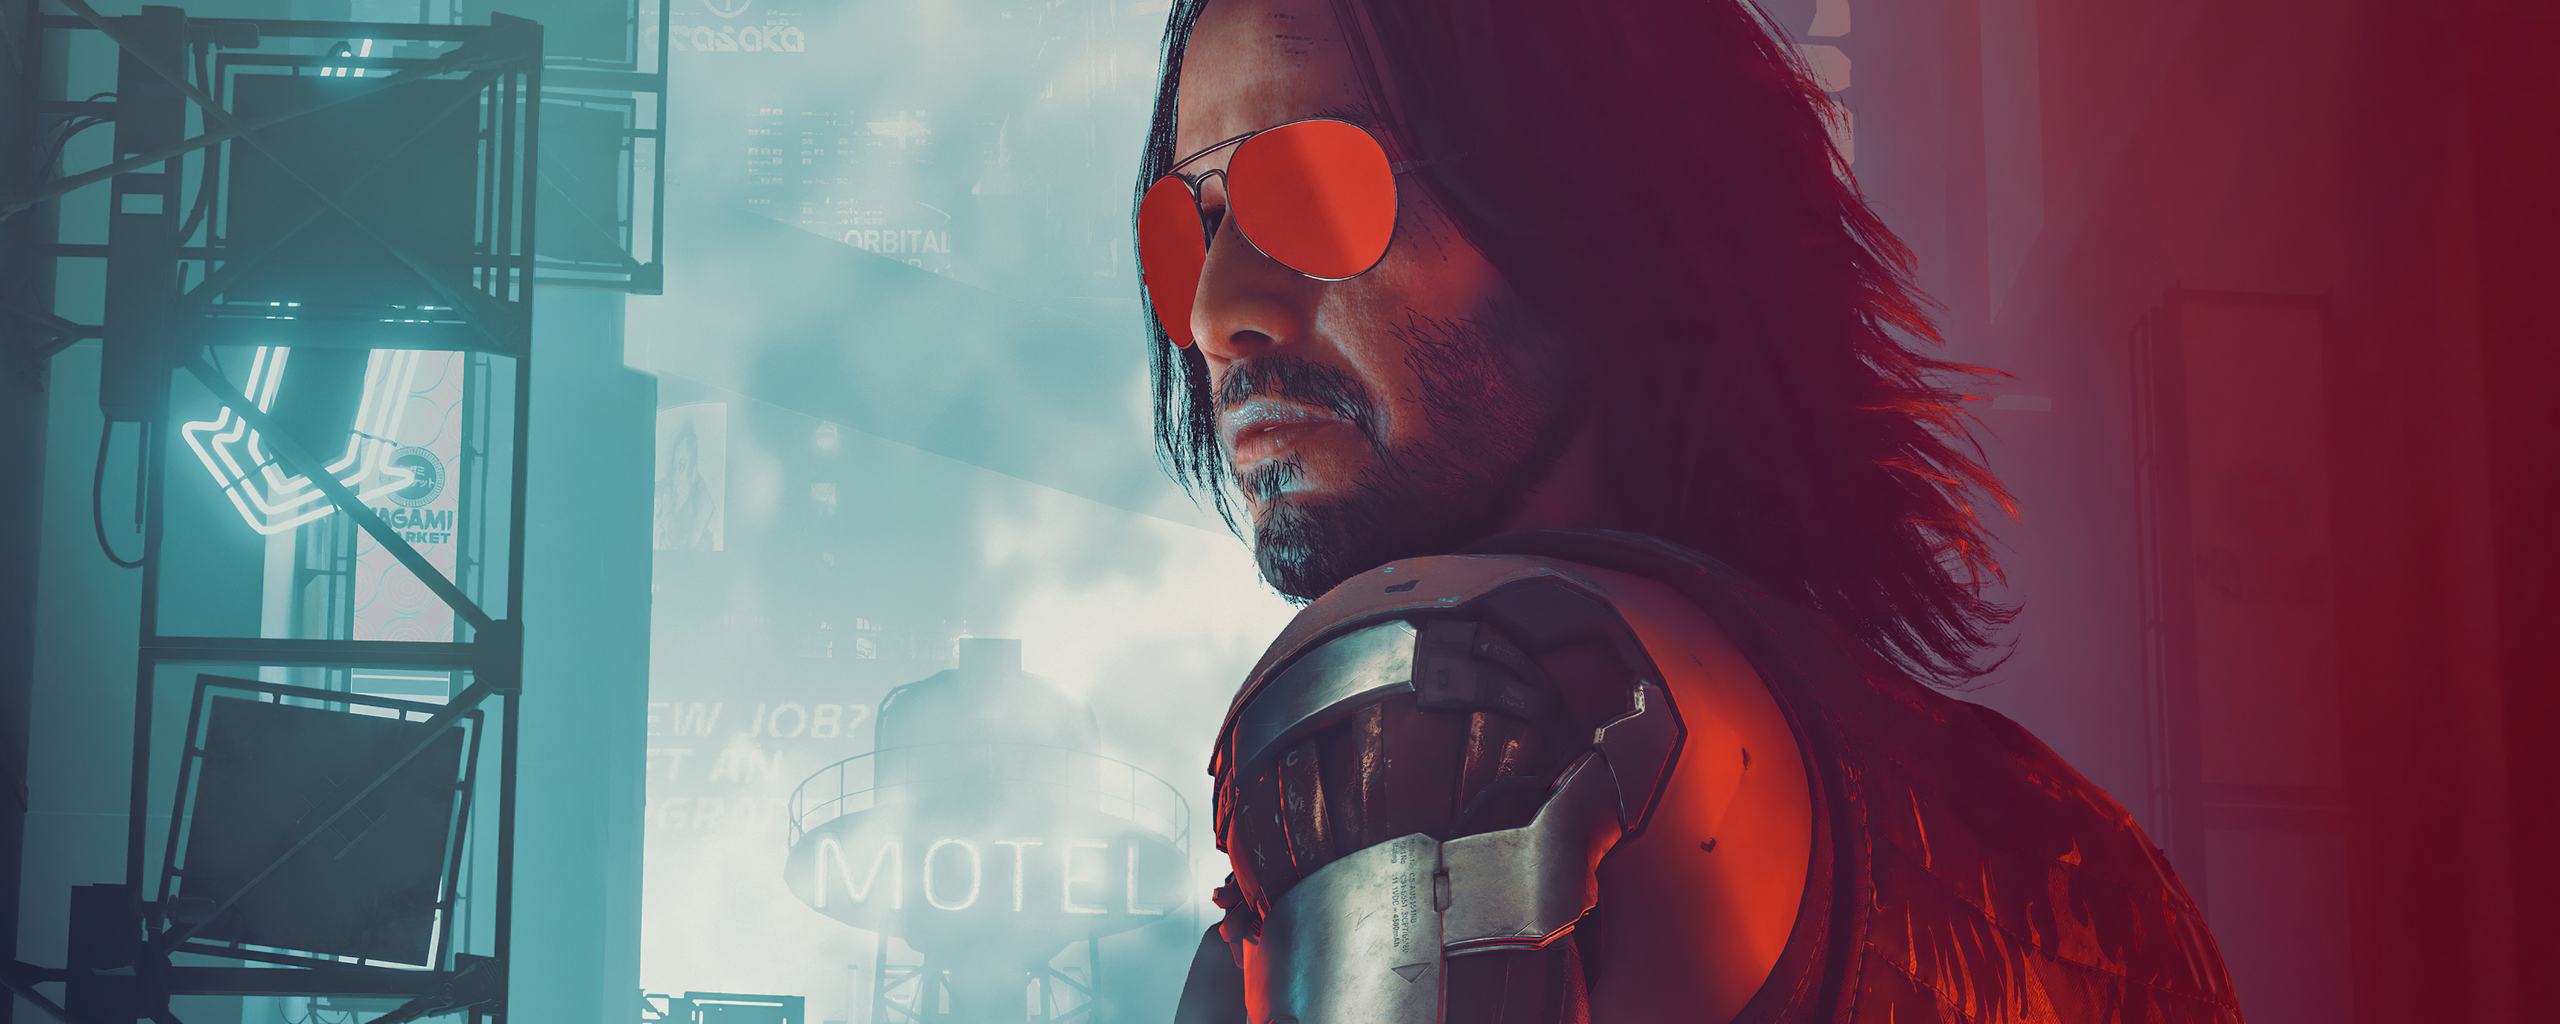 rockerboy-johnny-cyberpunk-2077-es.jpg